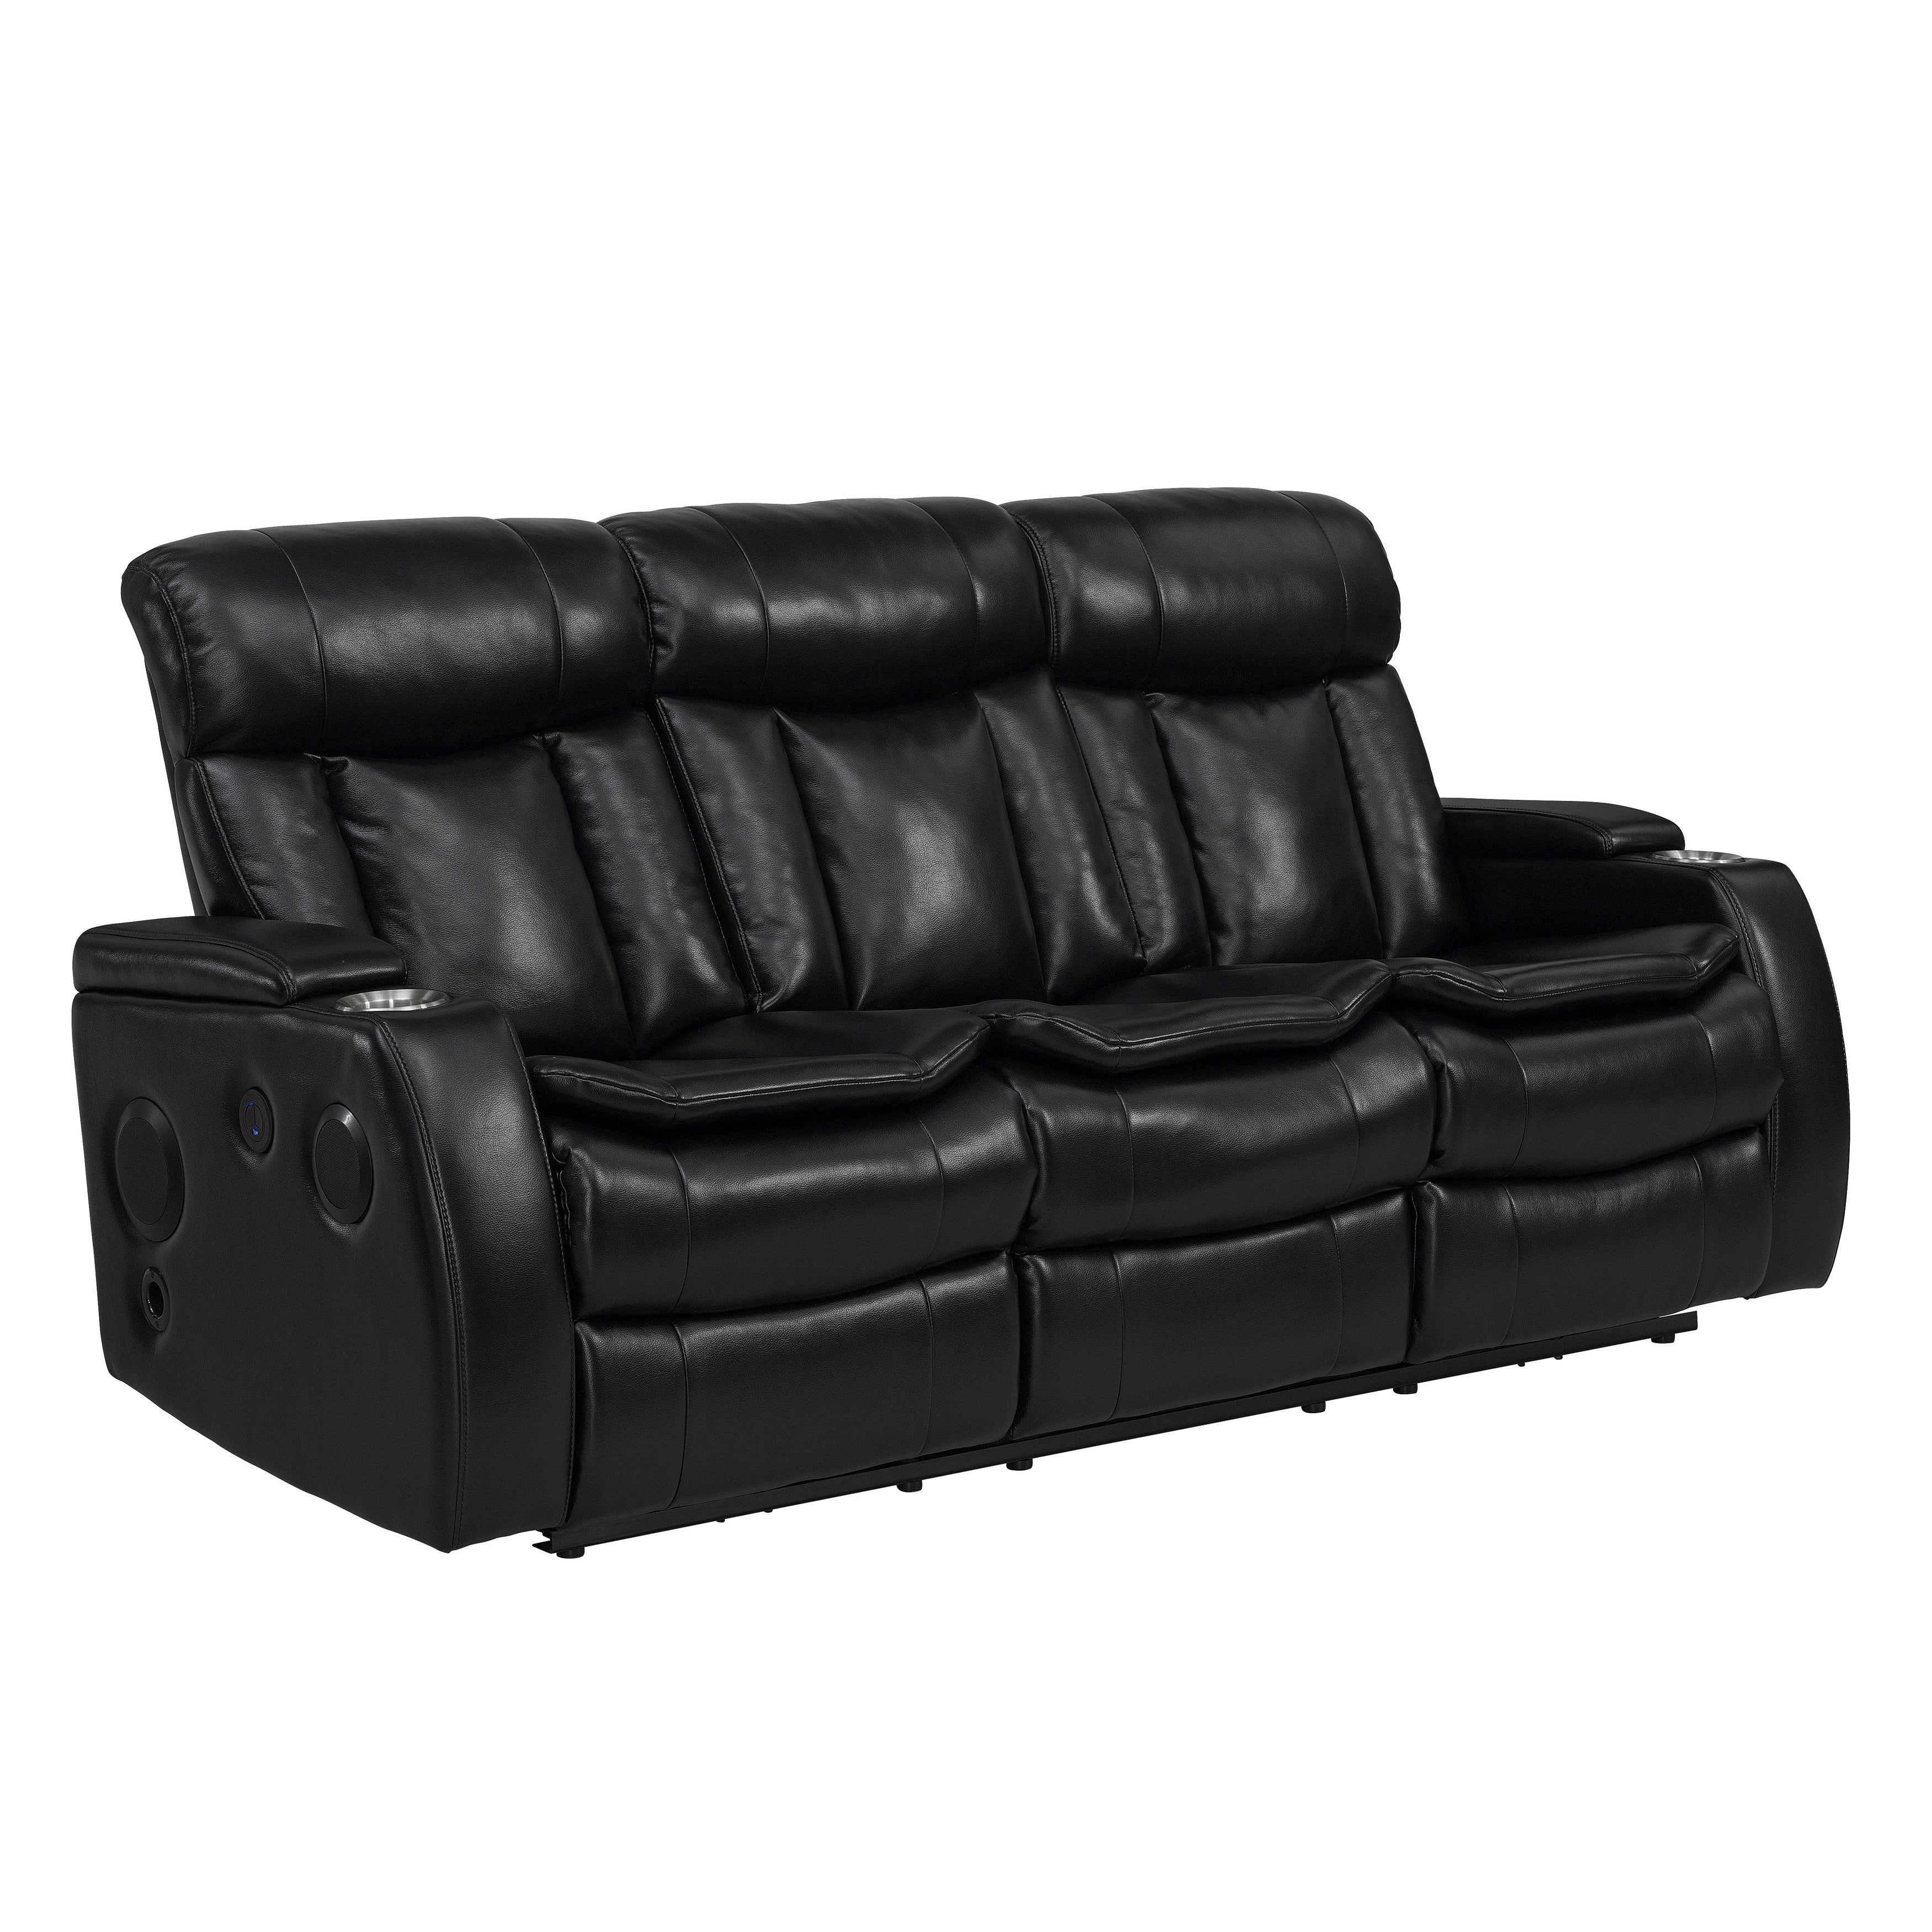 Sofas Recliner Genella 83 Reclining Sofa With Headrest And Usb Thesofa